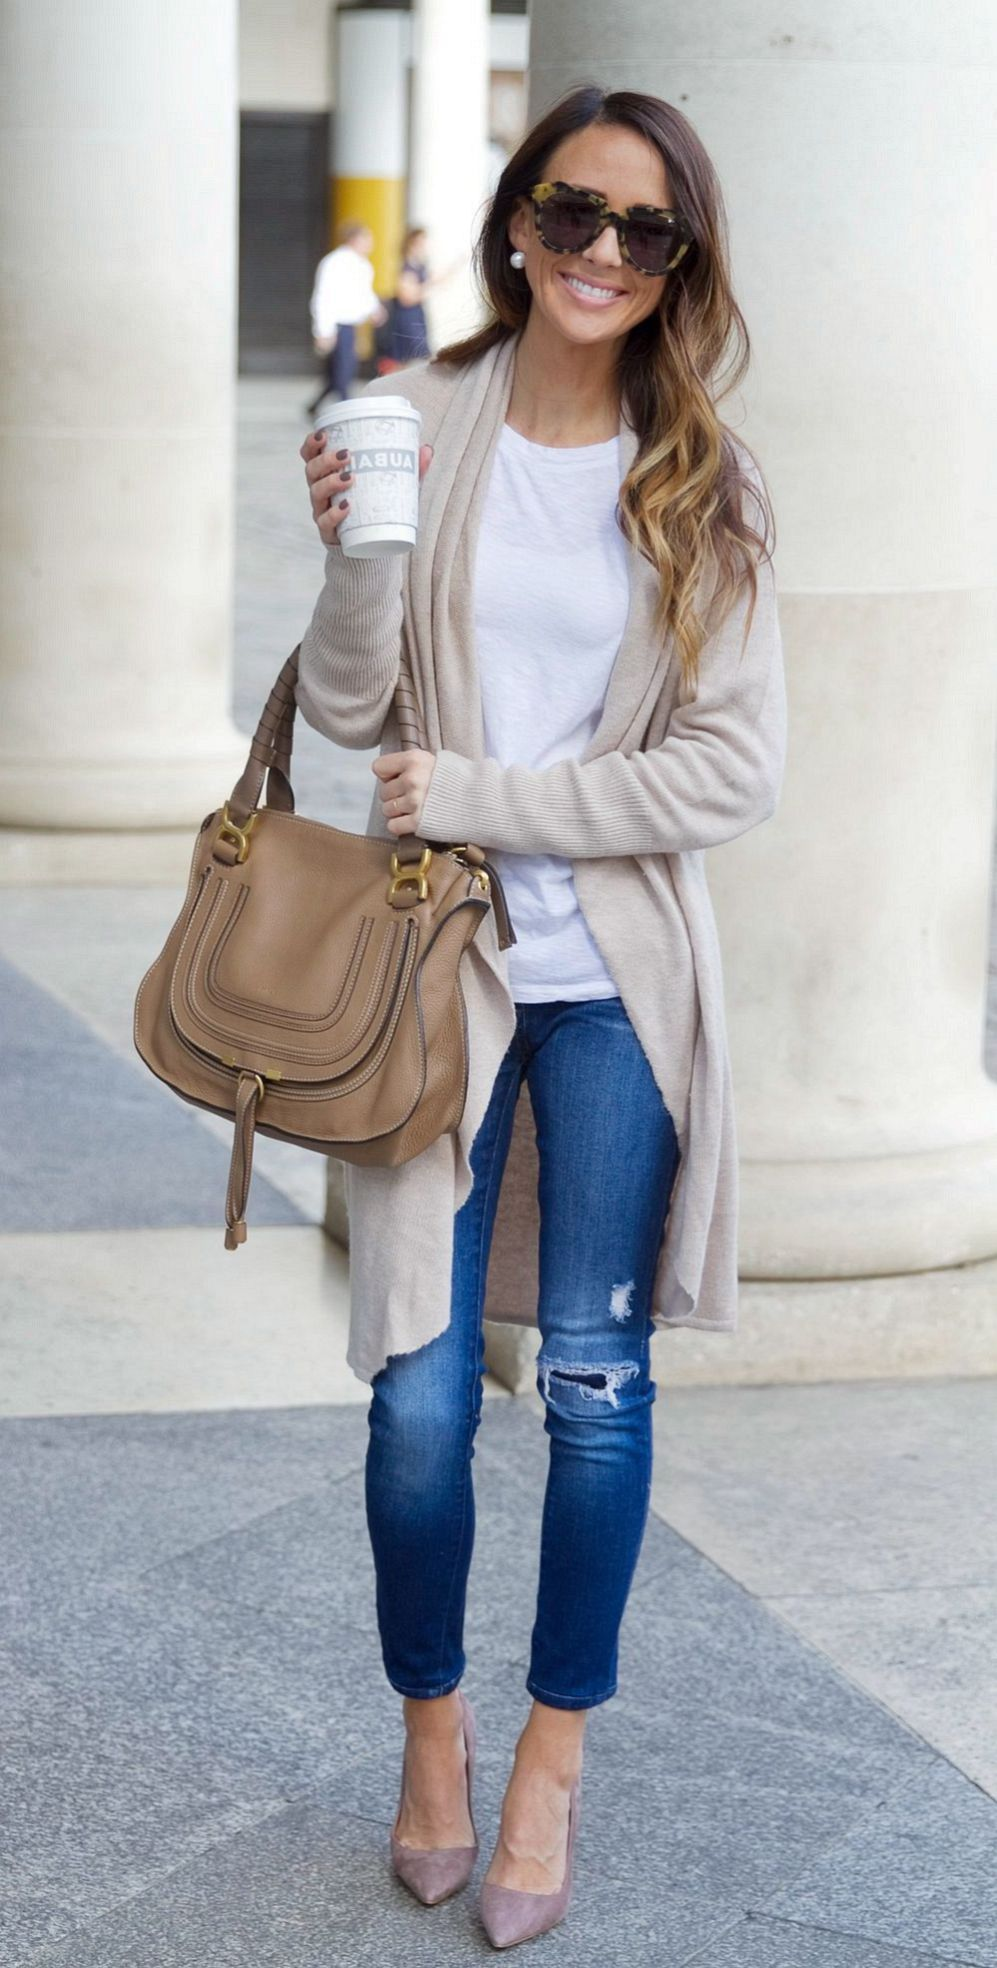 60+ Best Casual Office Attire Trends for Women 2017 | Casual office attire Casual office and ...